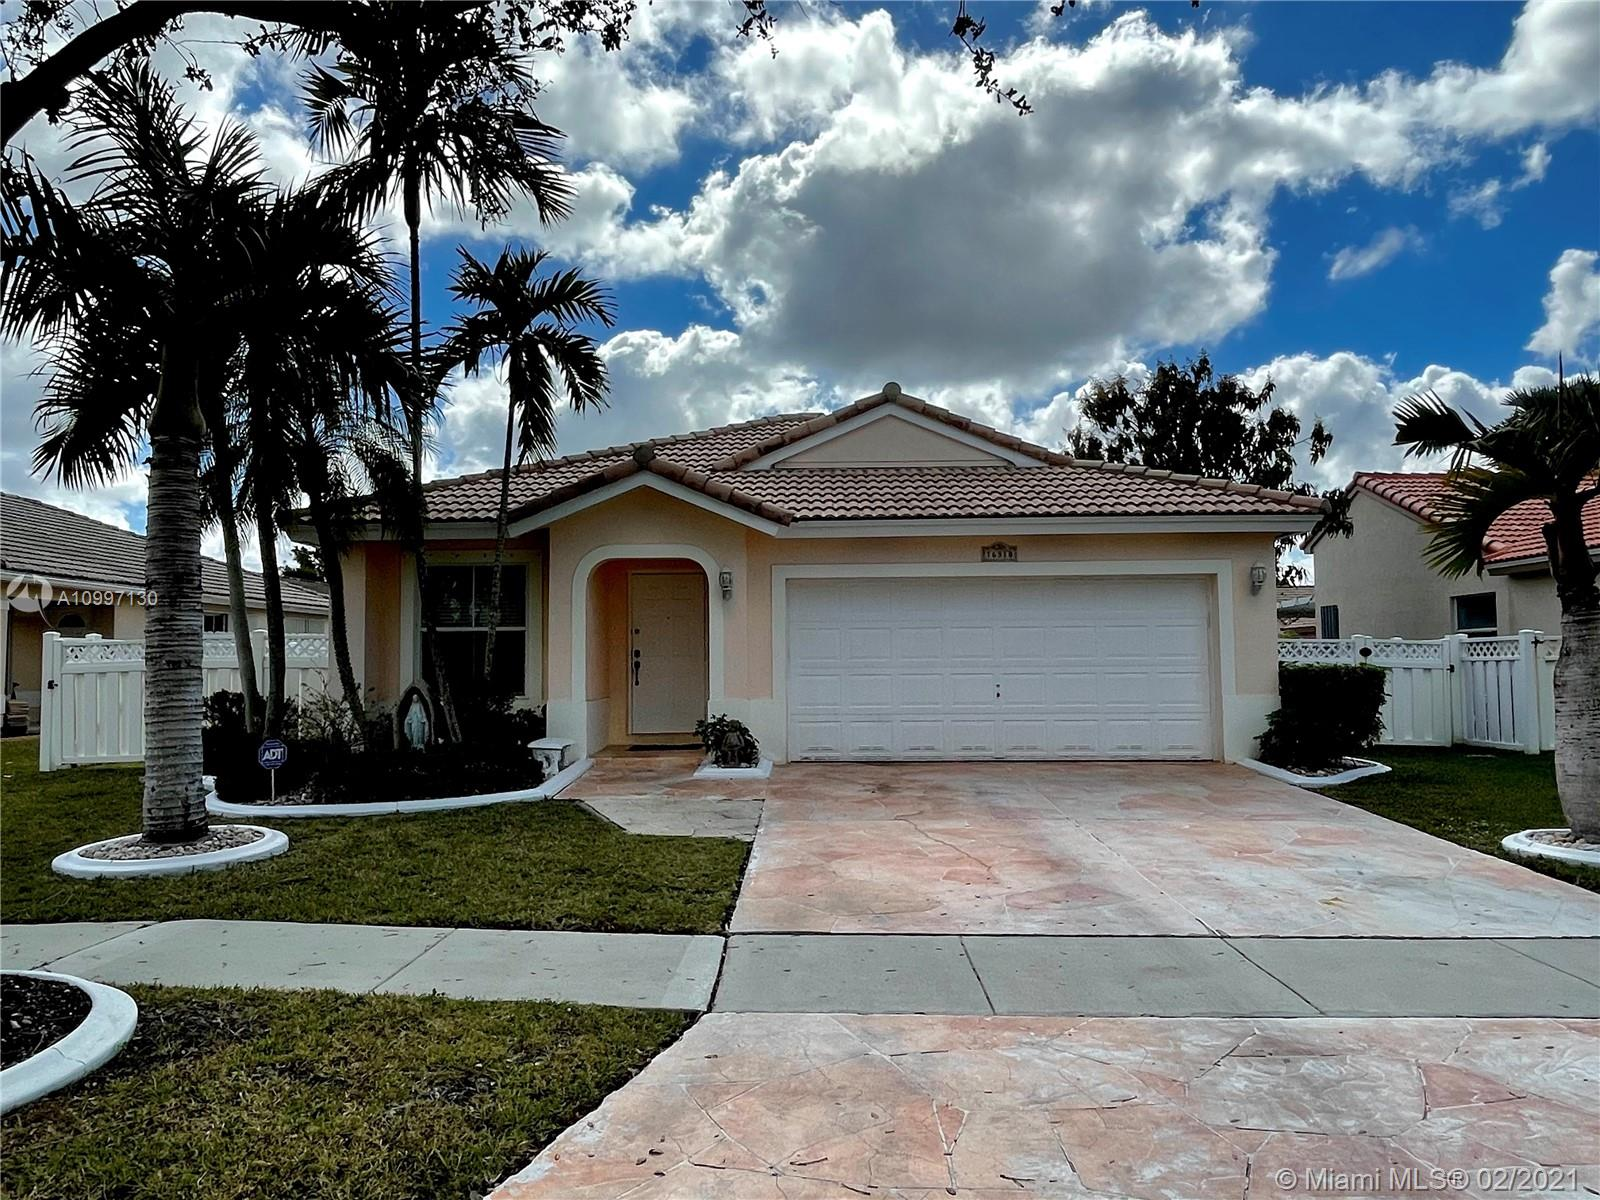 Here's your opportunity to own a 3 bedroom, 2 bath pool home and live in the serene Guard-gated community of the Beaches at Pembroke Shores! This one makes a great starter home.....Boasting an open floor plan with a kitchen overlooking a oversized family room. You get the opportunity to update and upgrade it to your personal taste. Come take a look at the least expensive pool home available in Pembroke Shores. Owner ready to sell and downsize!